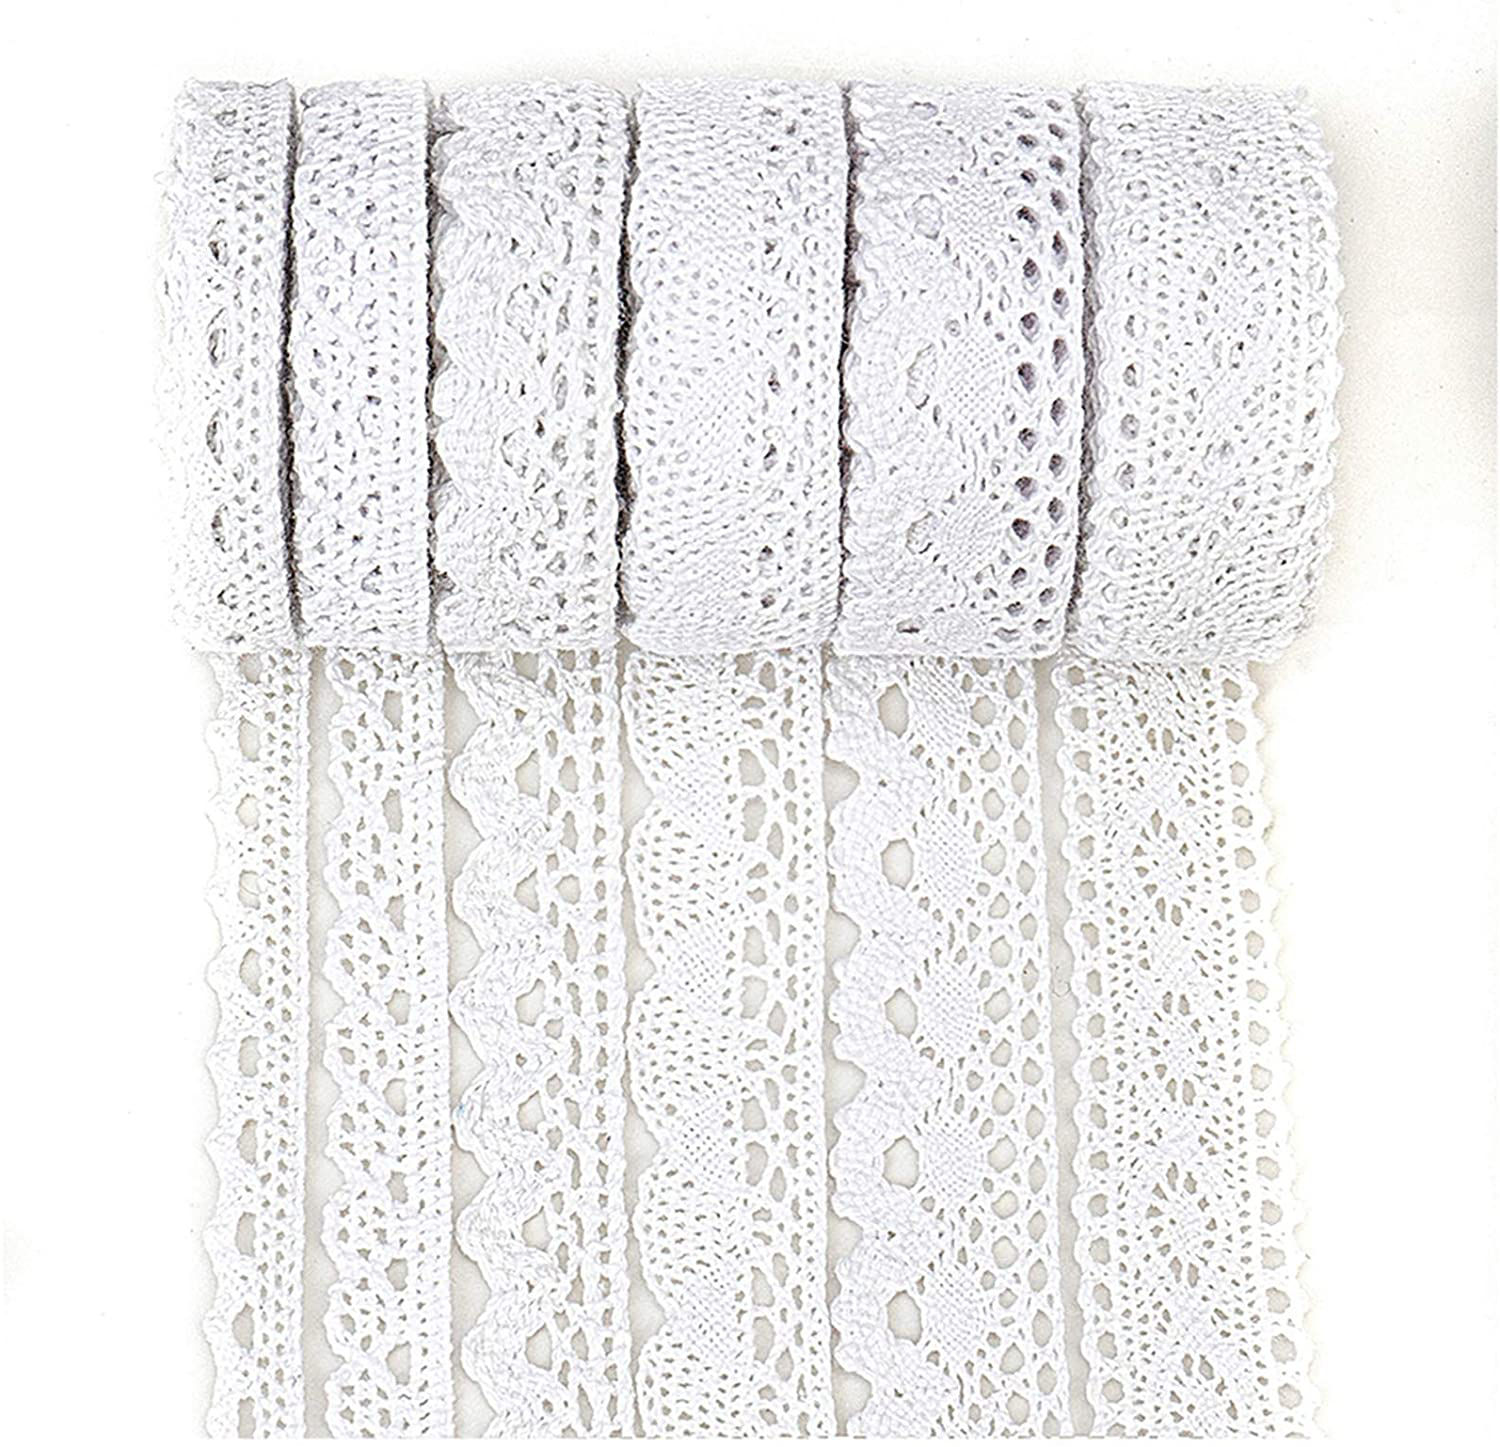 Photo of IDONGCAI Lace Ribbon for Crafts Lace Sewing Trims-Ribbon Lace for Bridal Wedding Decoration Valentine's Day Package DIY Sewing Craft Supply Mix 40 Yards (5 Yard Each) – White